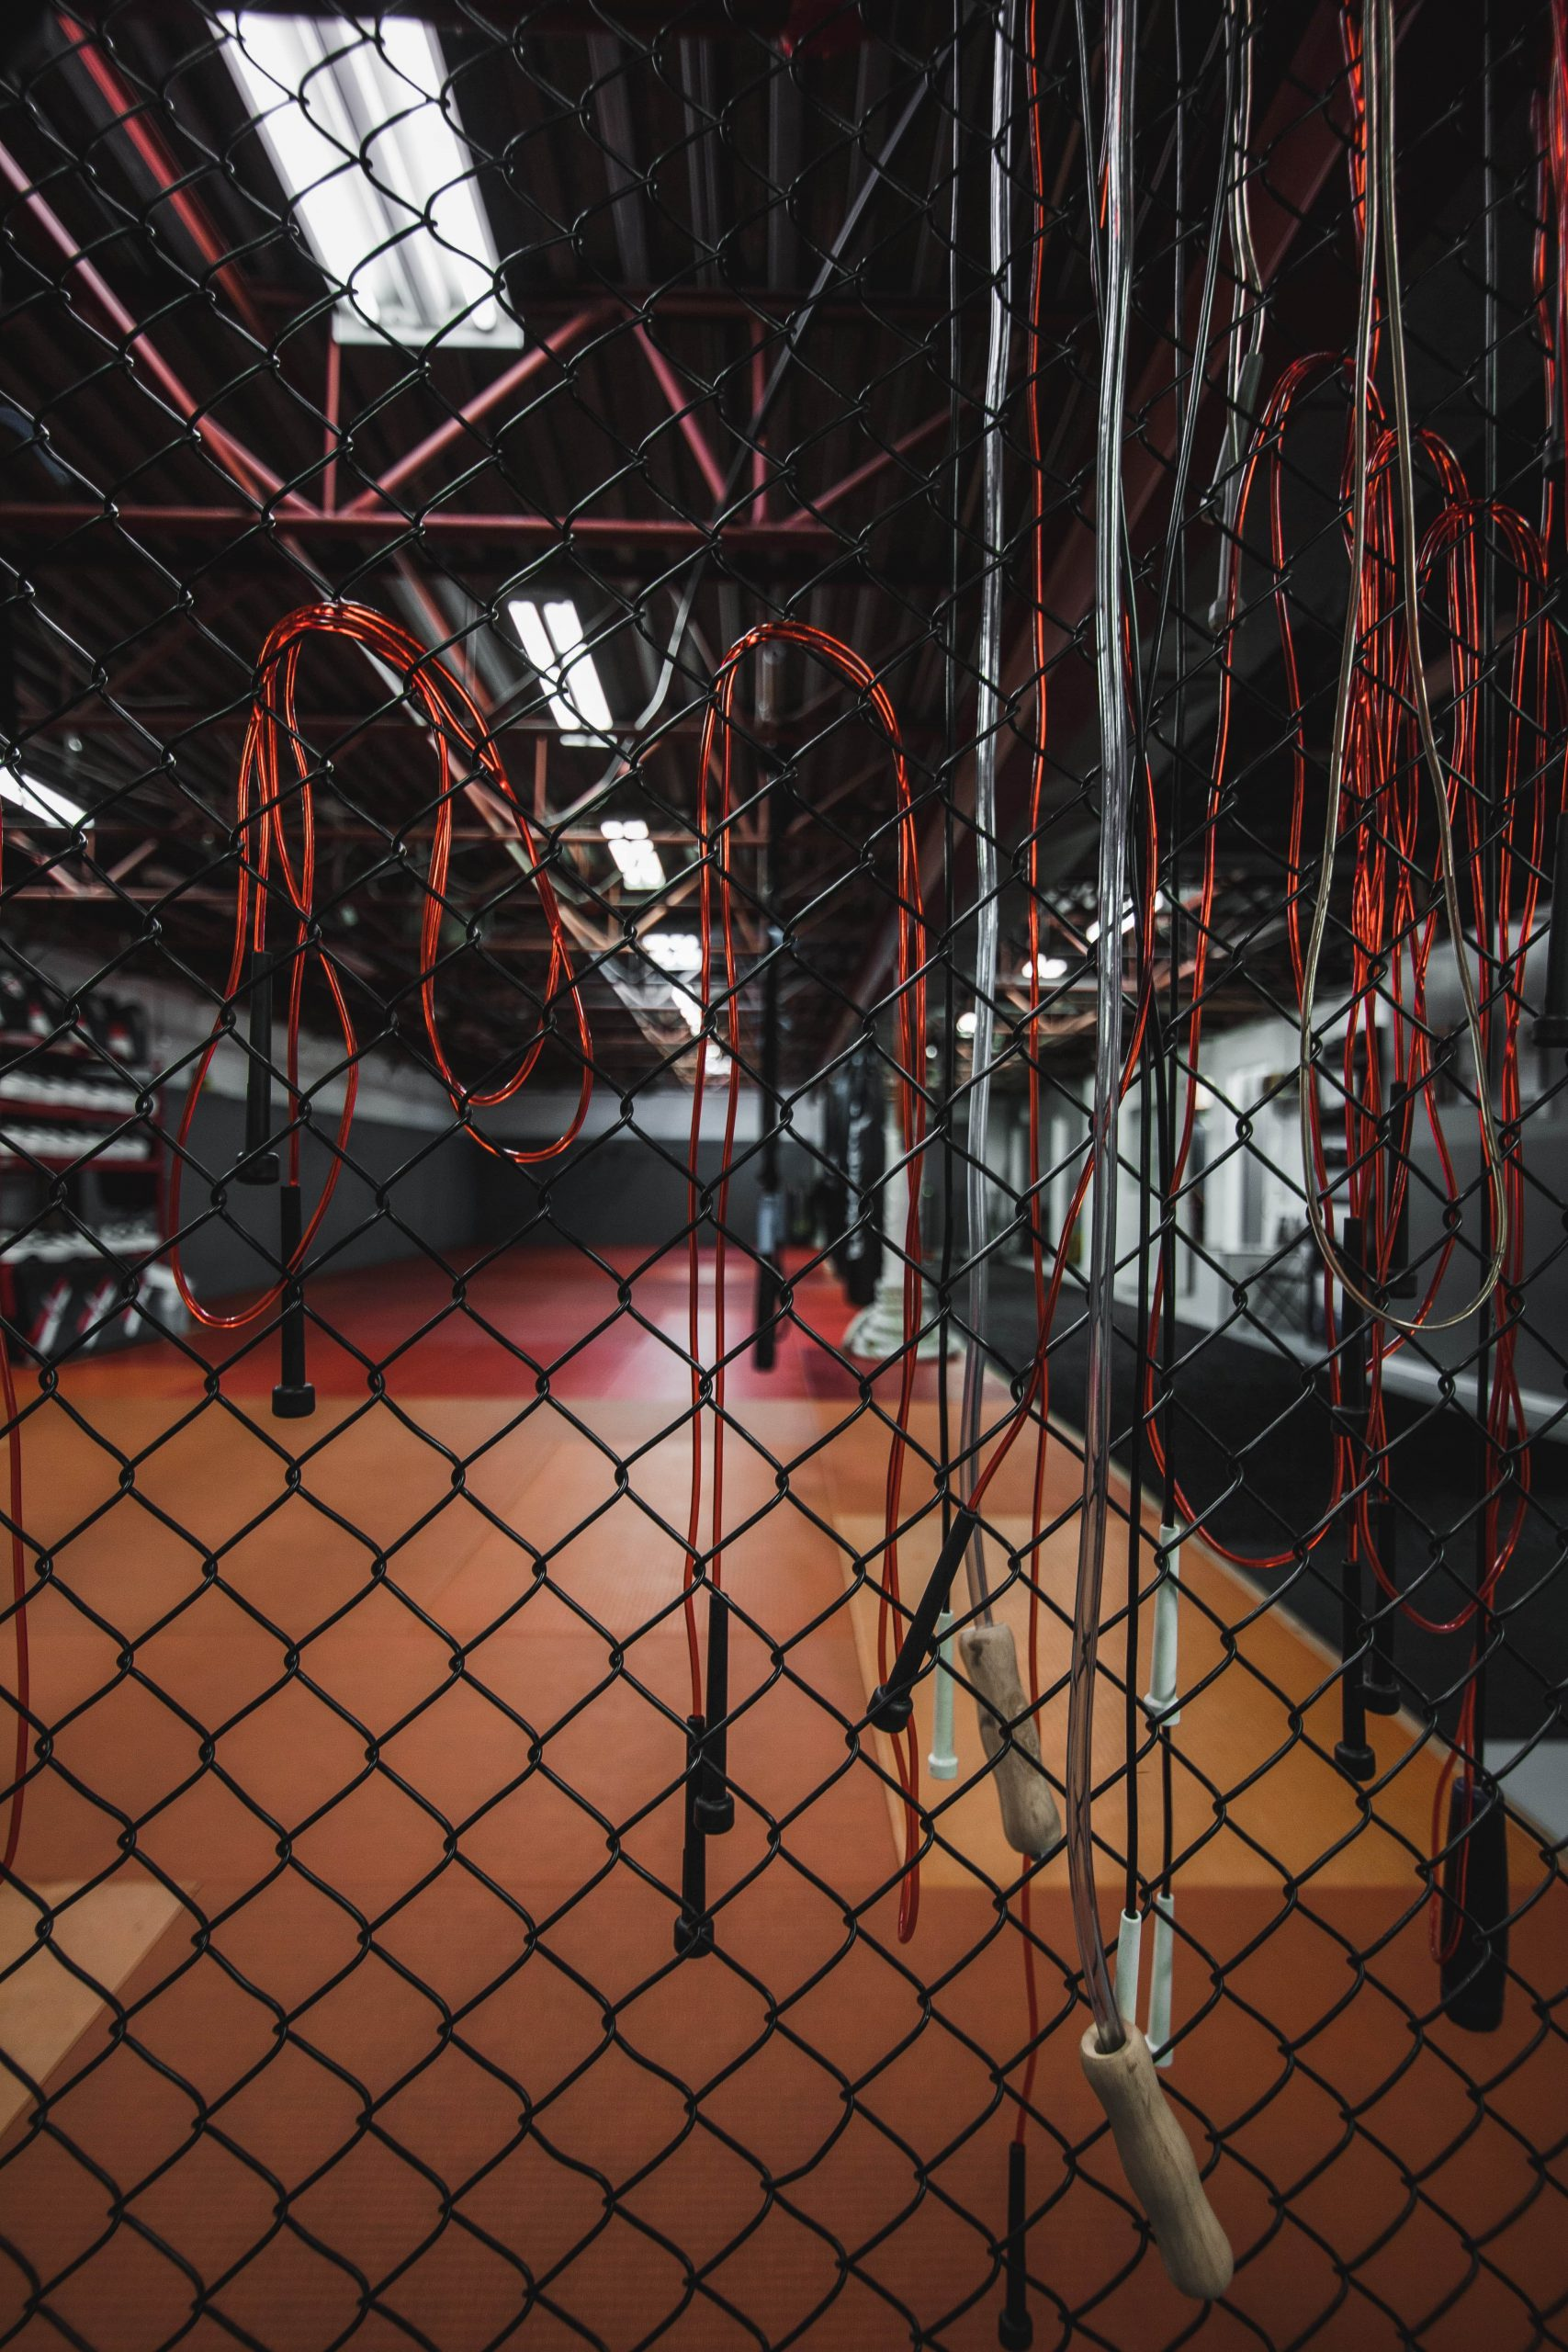 white and red skipping ropes hanging on chain link gate in gym